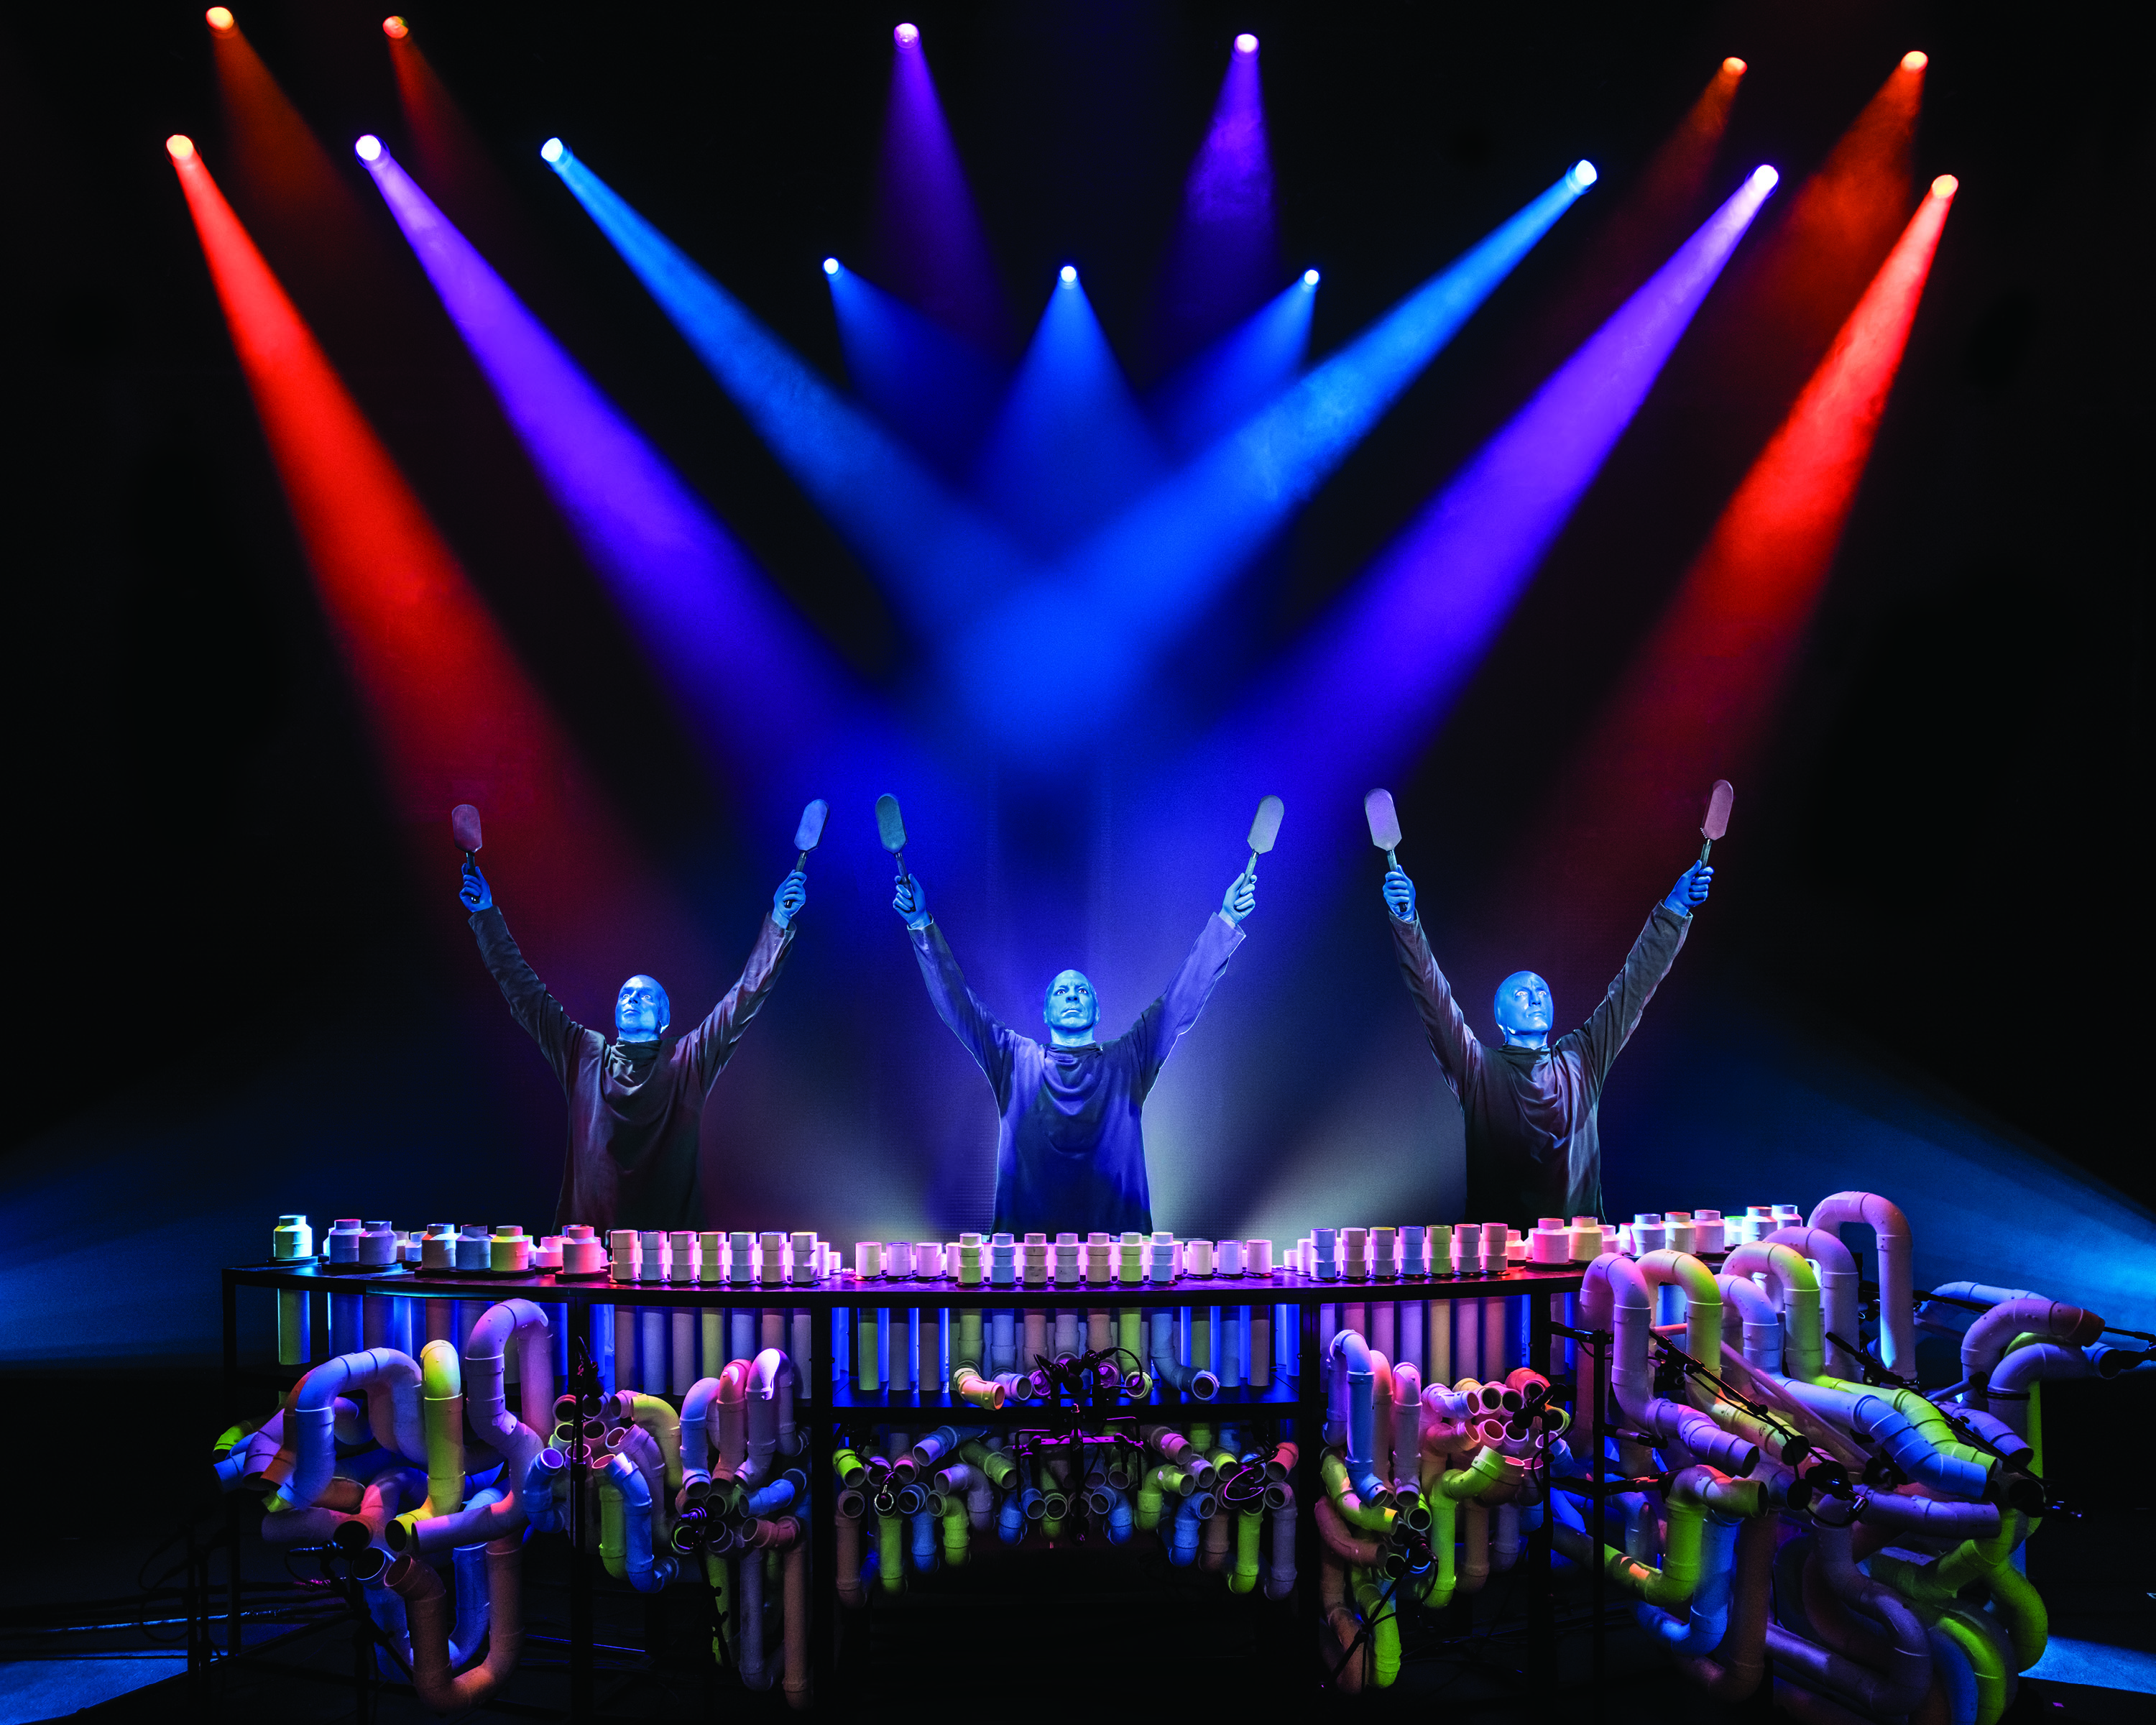 BlueMan_photo_PVCArmsUp_10x8.jpg.jpg